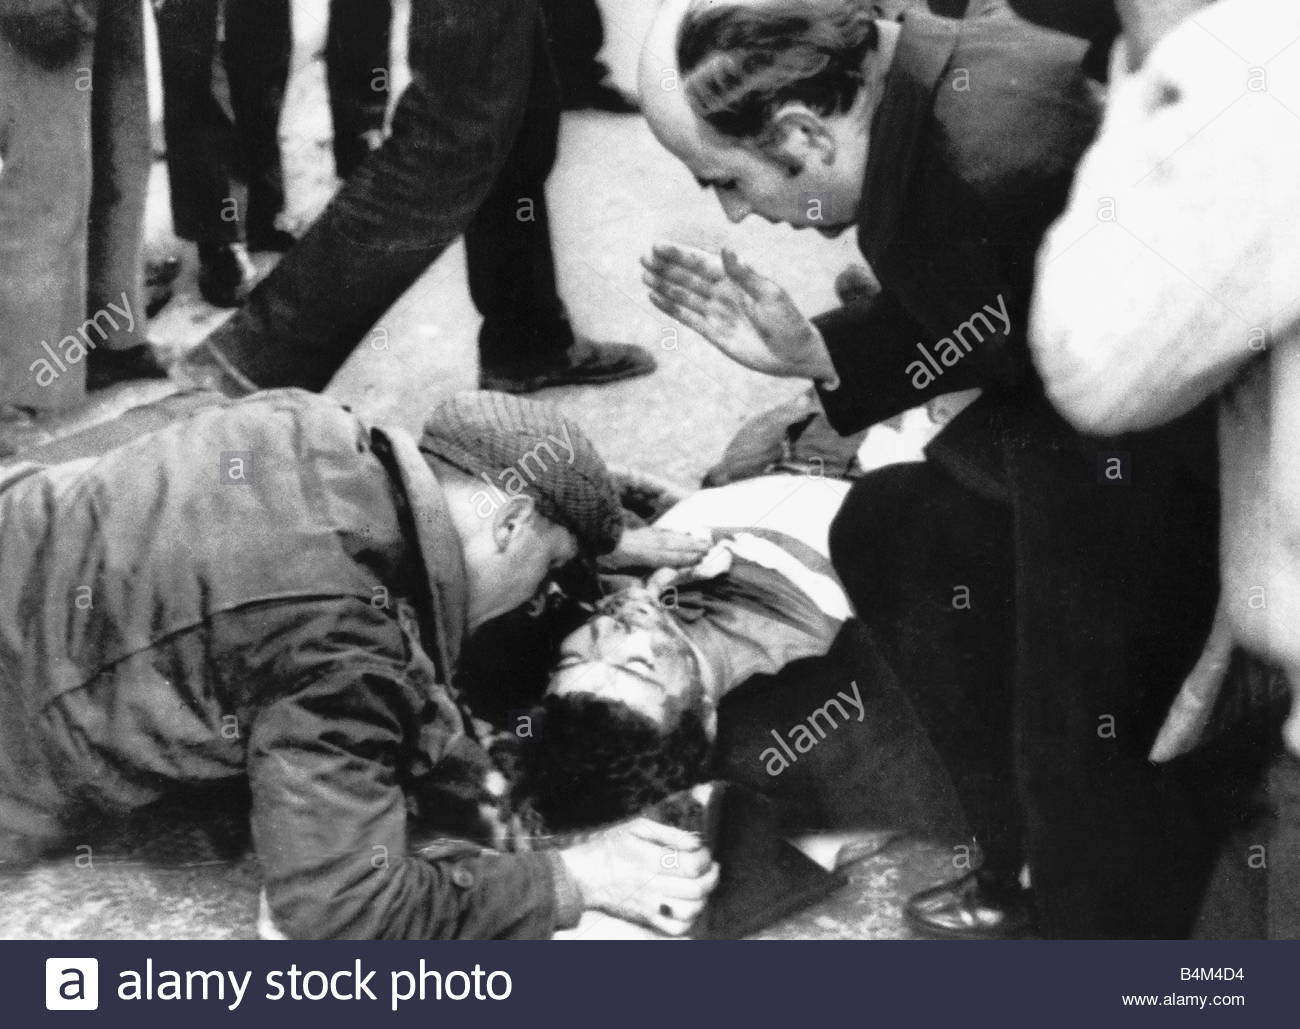 A priest gives last rites to a boy injured in the Bloody Sunday riots in Derry N Ireland 30 January 1972 saw one - Stock Image